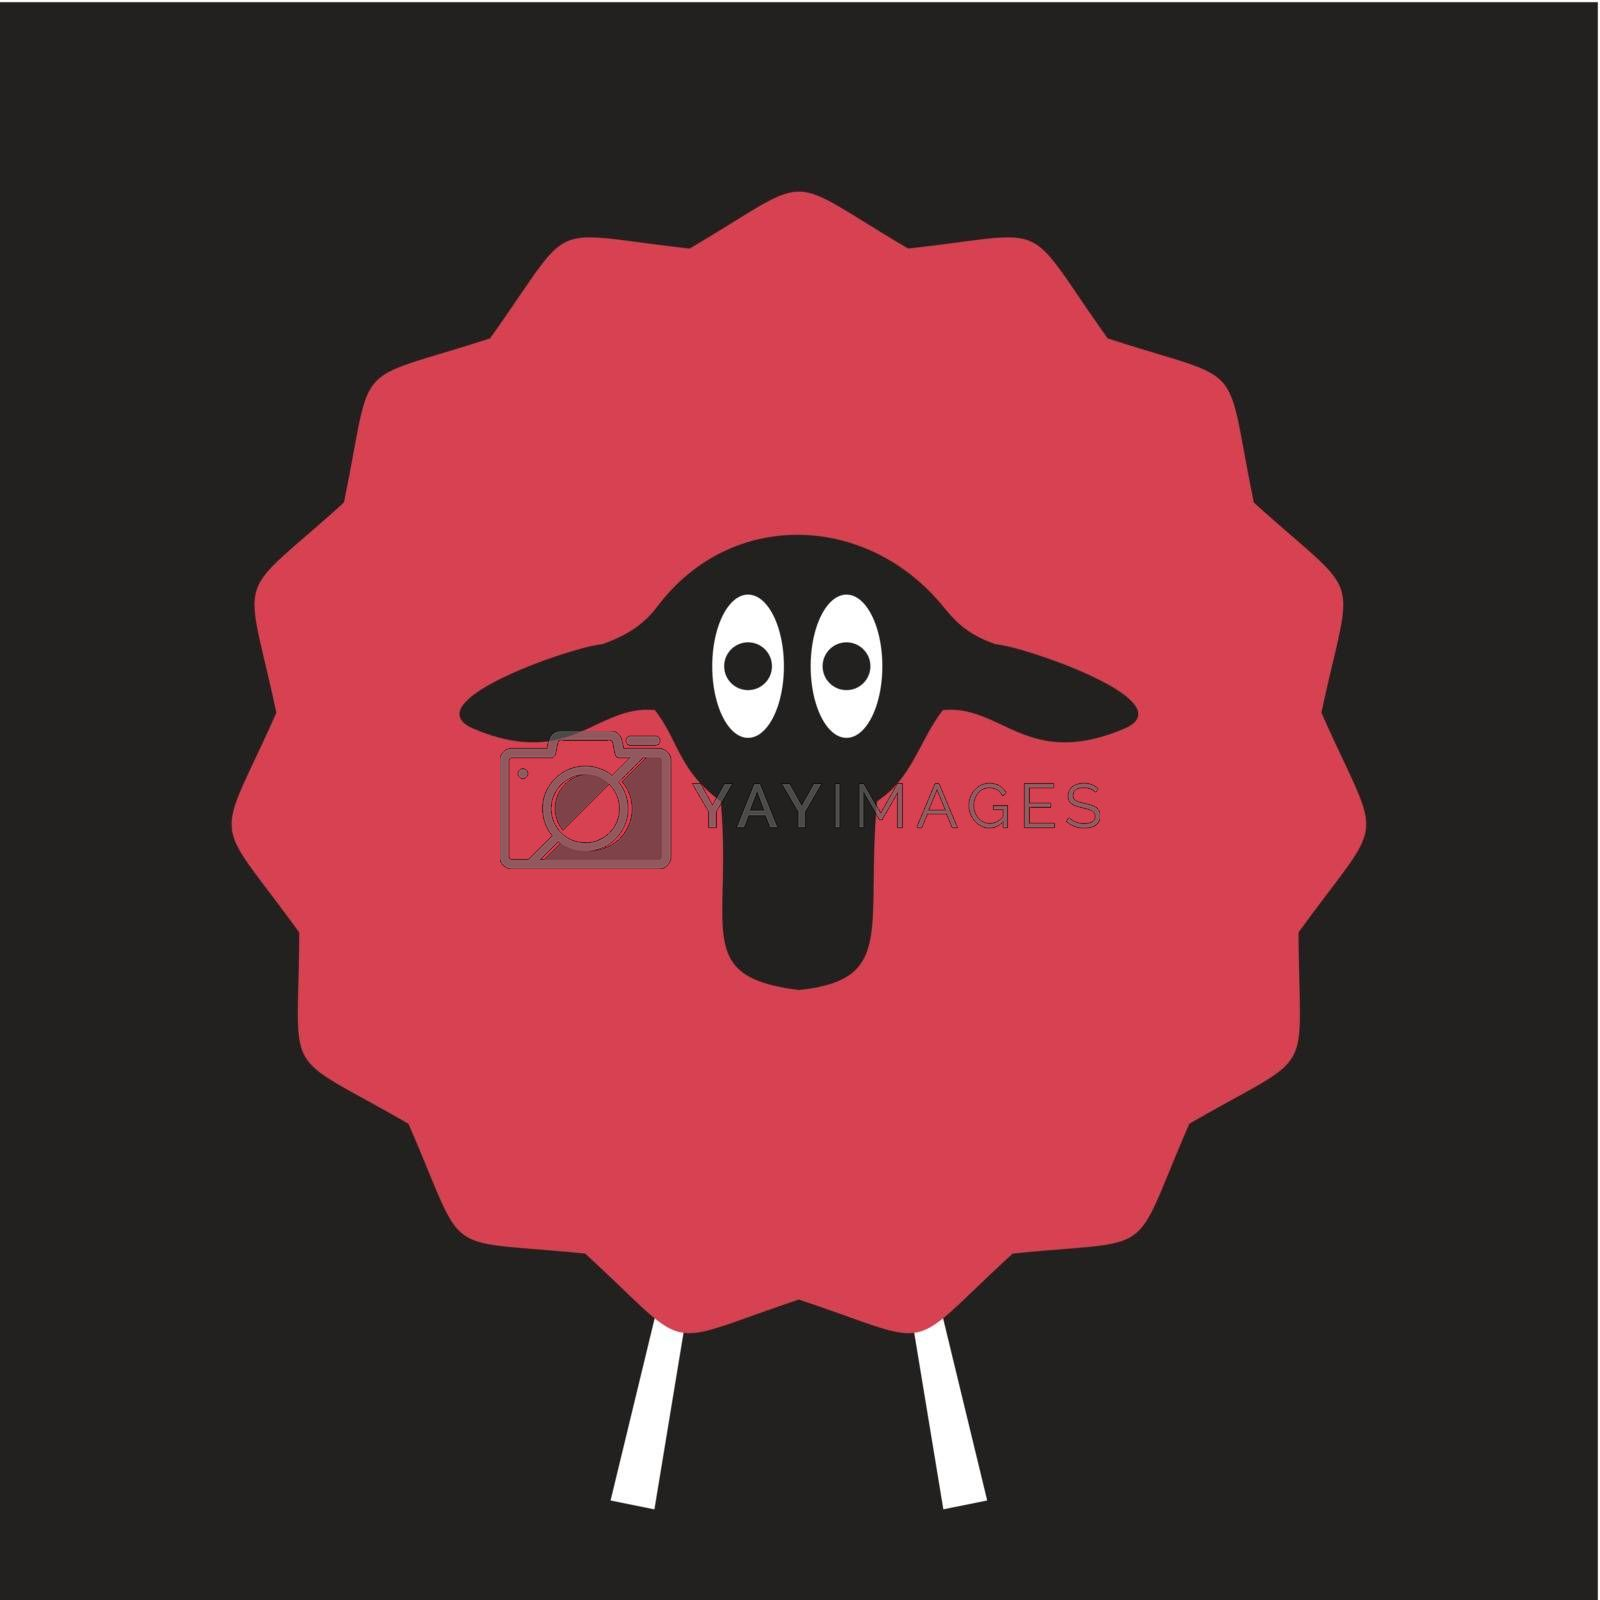 red sheep on a black background